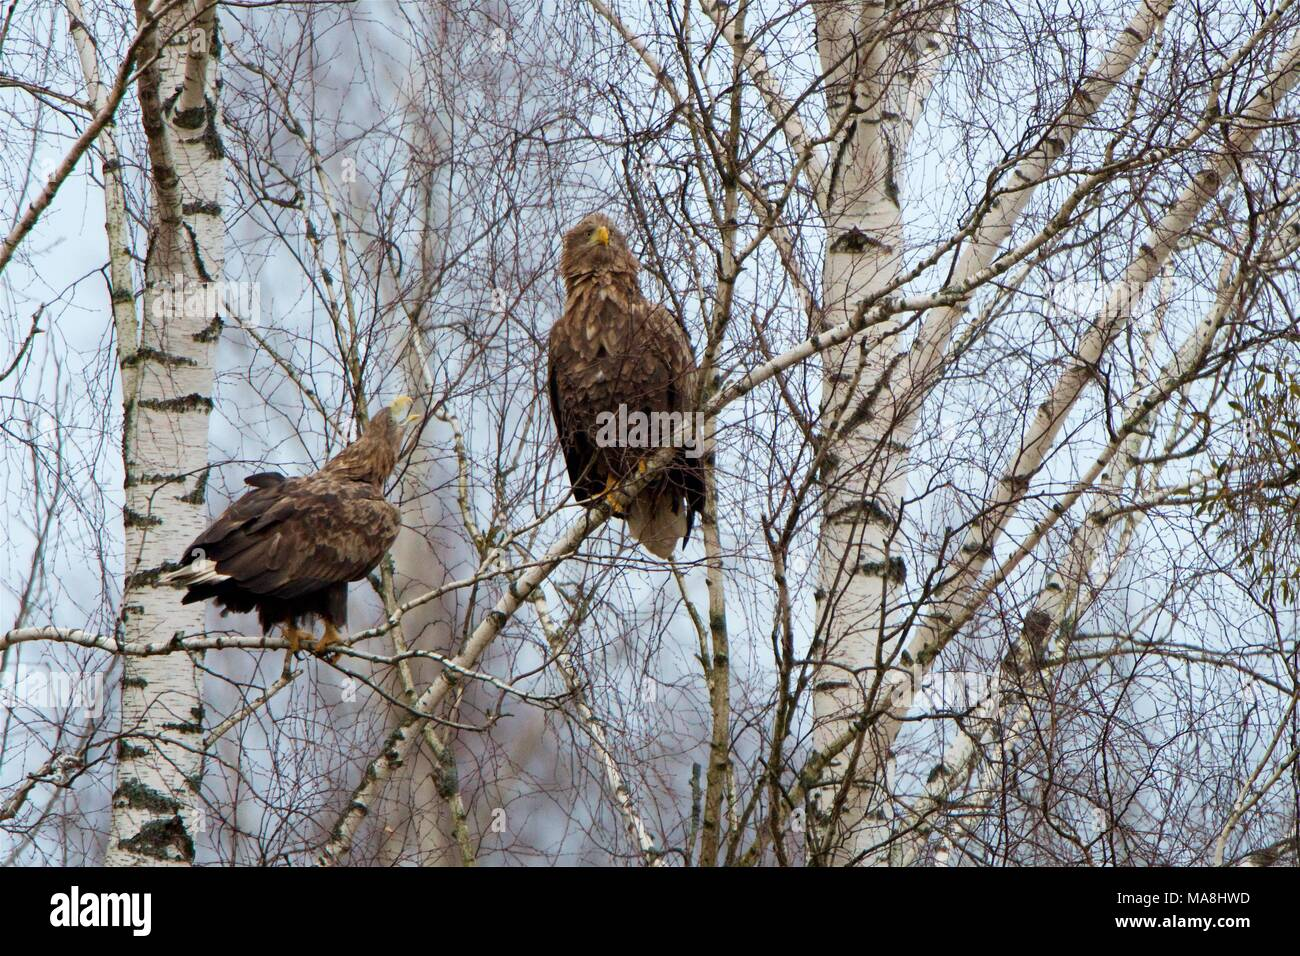 Two White-tailed Sea-eagles perched in a birch tree, in winter, in Bialowieza Forest, Poland Stock Photo